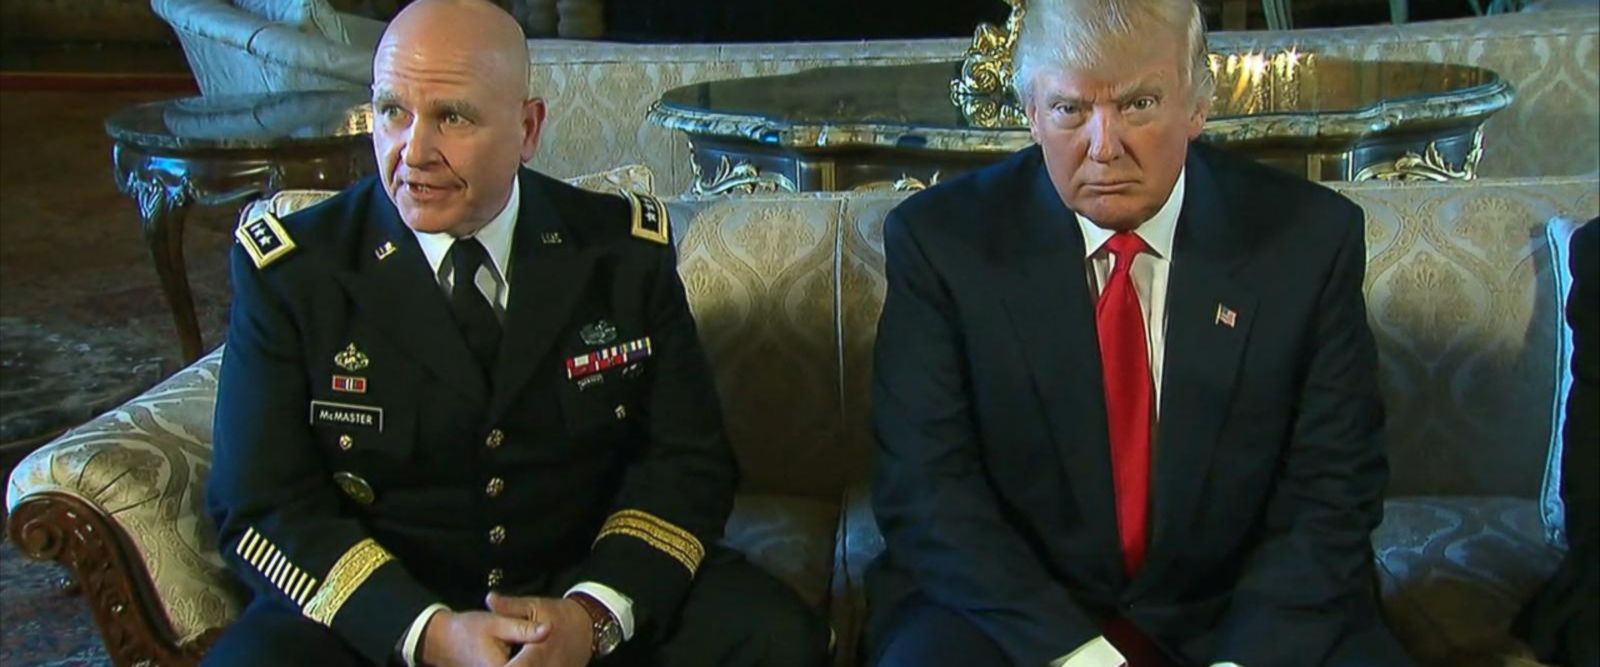 McMaster is an Army lieutenant general.